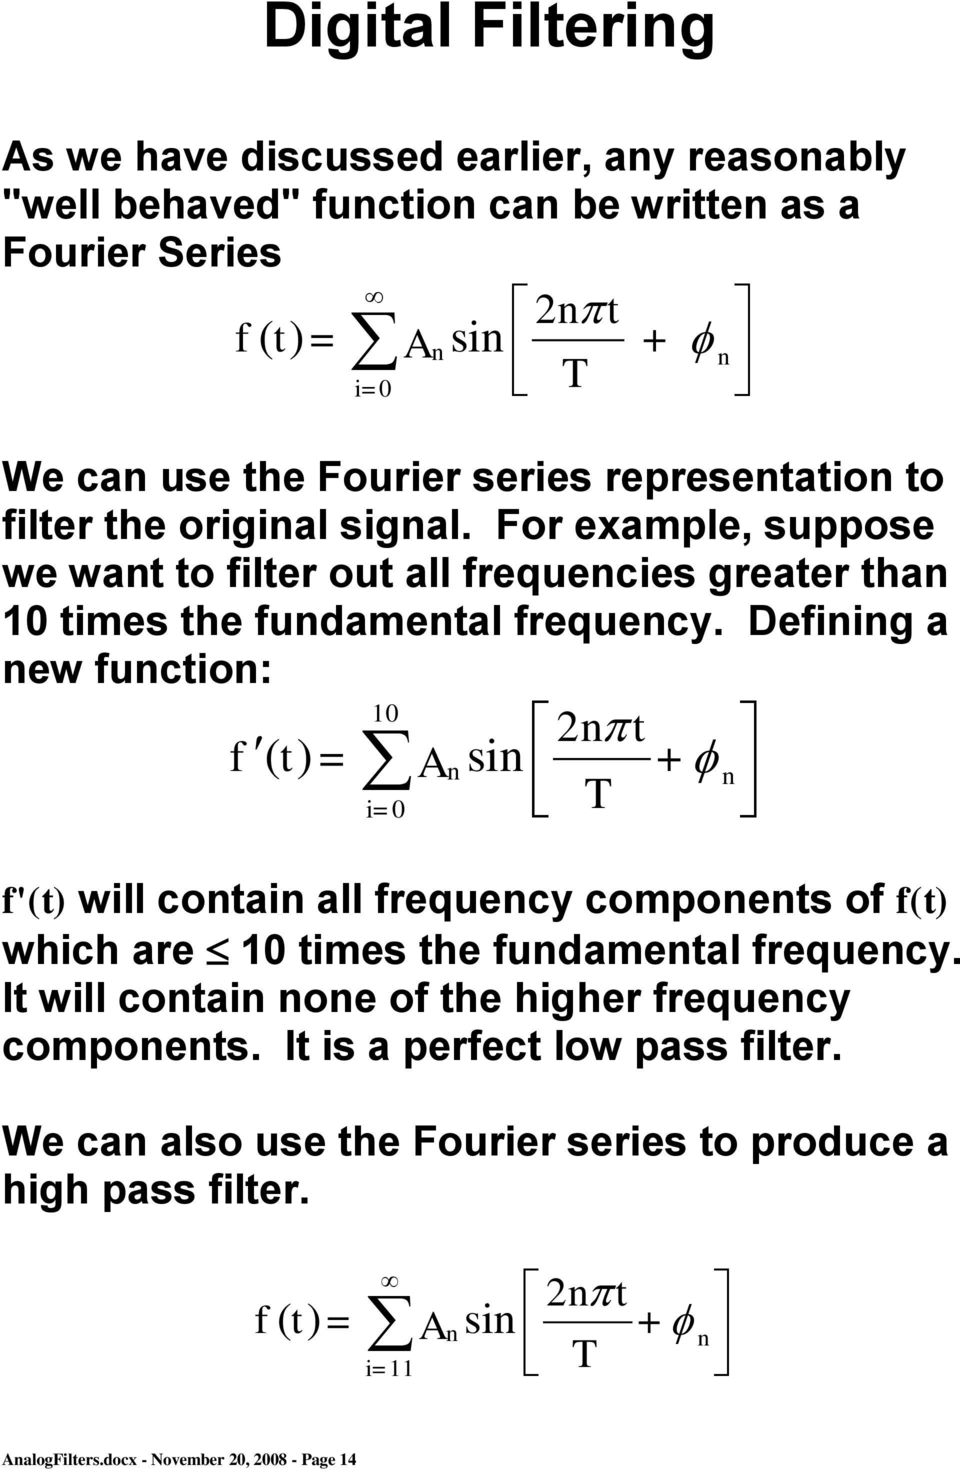 Defining a new function: 10 2n t f ( t ) = Ansin + n i=0 T f'(t) will contain all frequency components of f(t) which are 10 times the fundamental frequency.